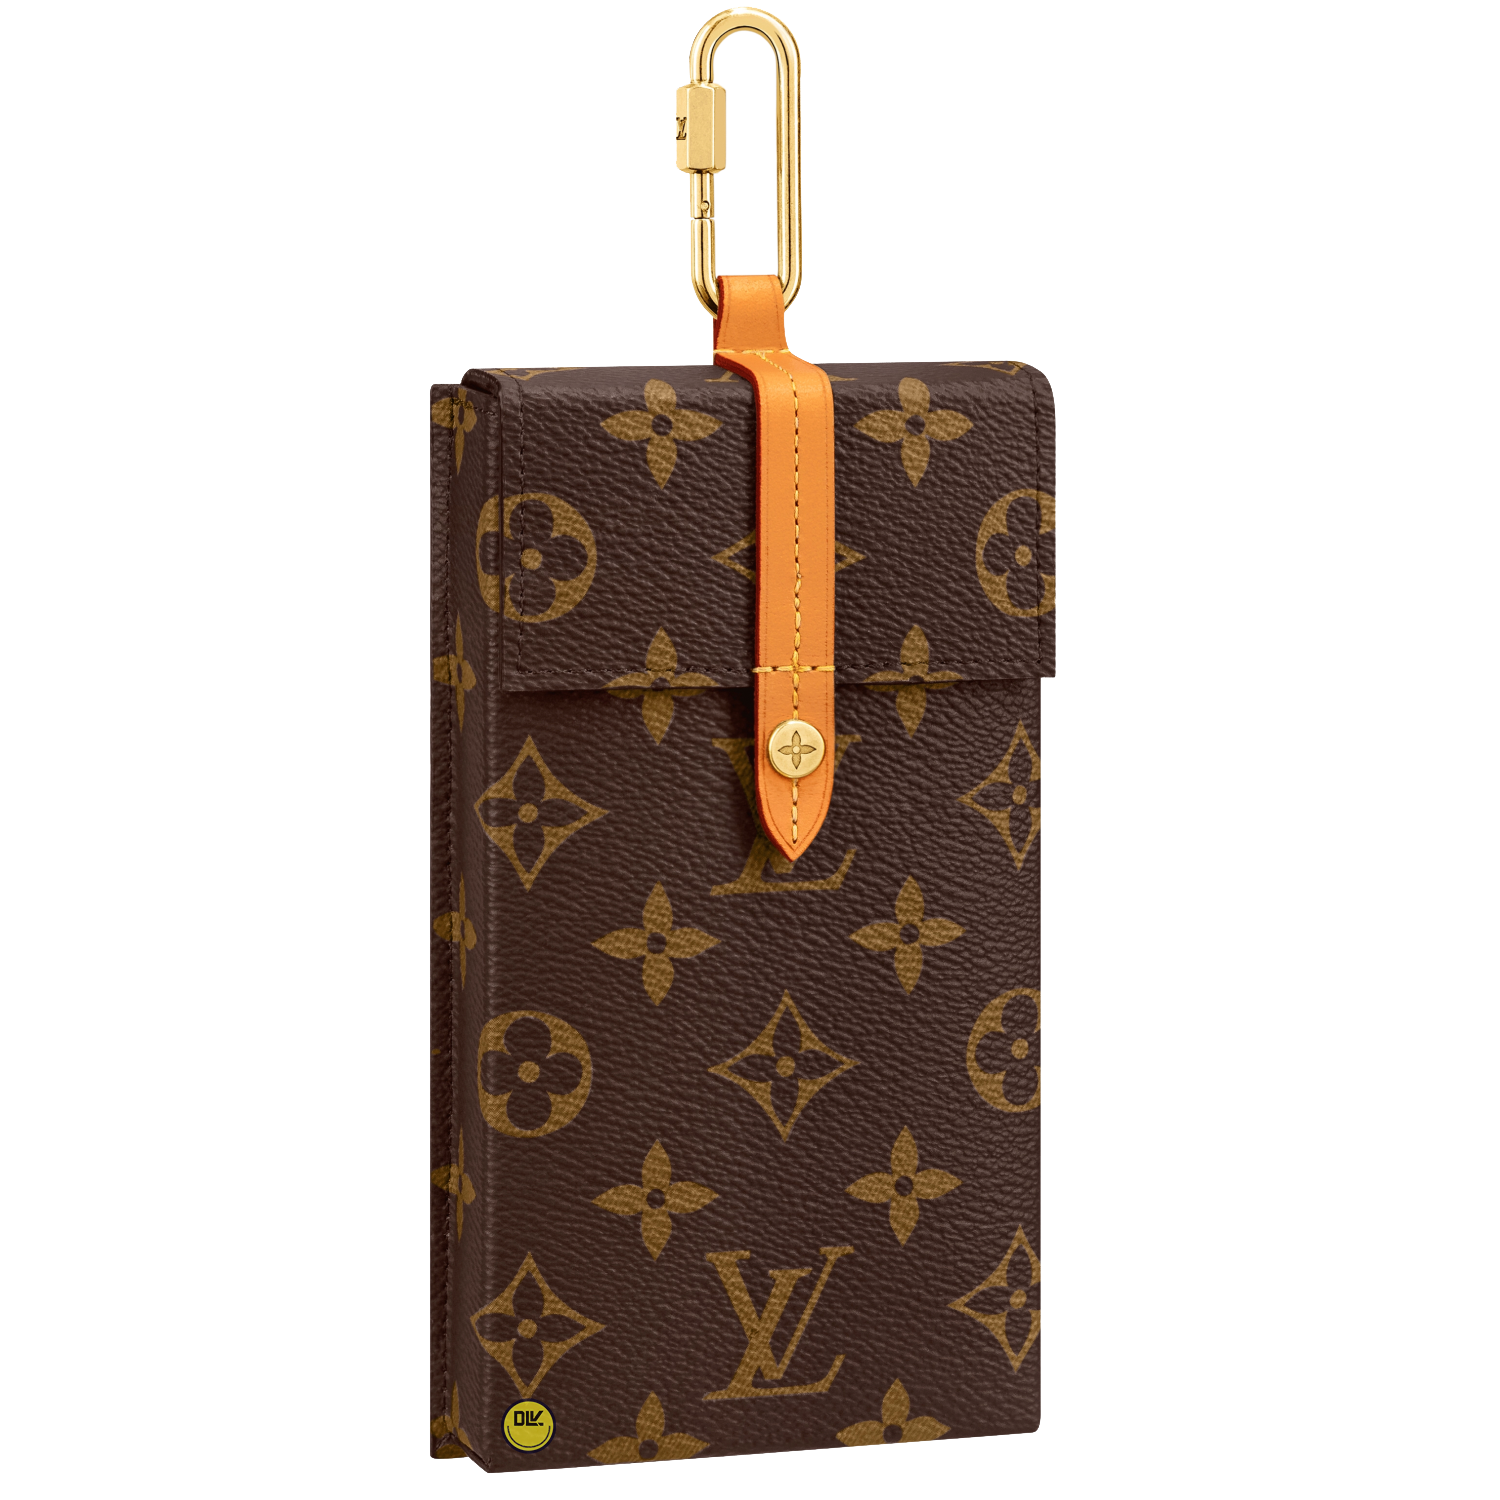 BOX PHONE CASE - €490 $725M68523MONOGRAM LEGACY